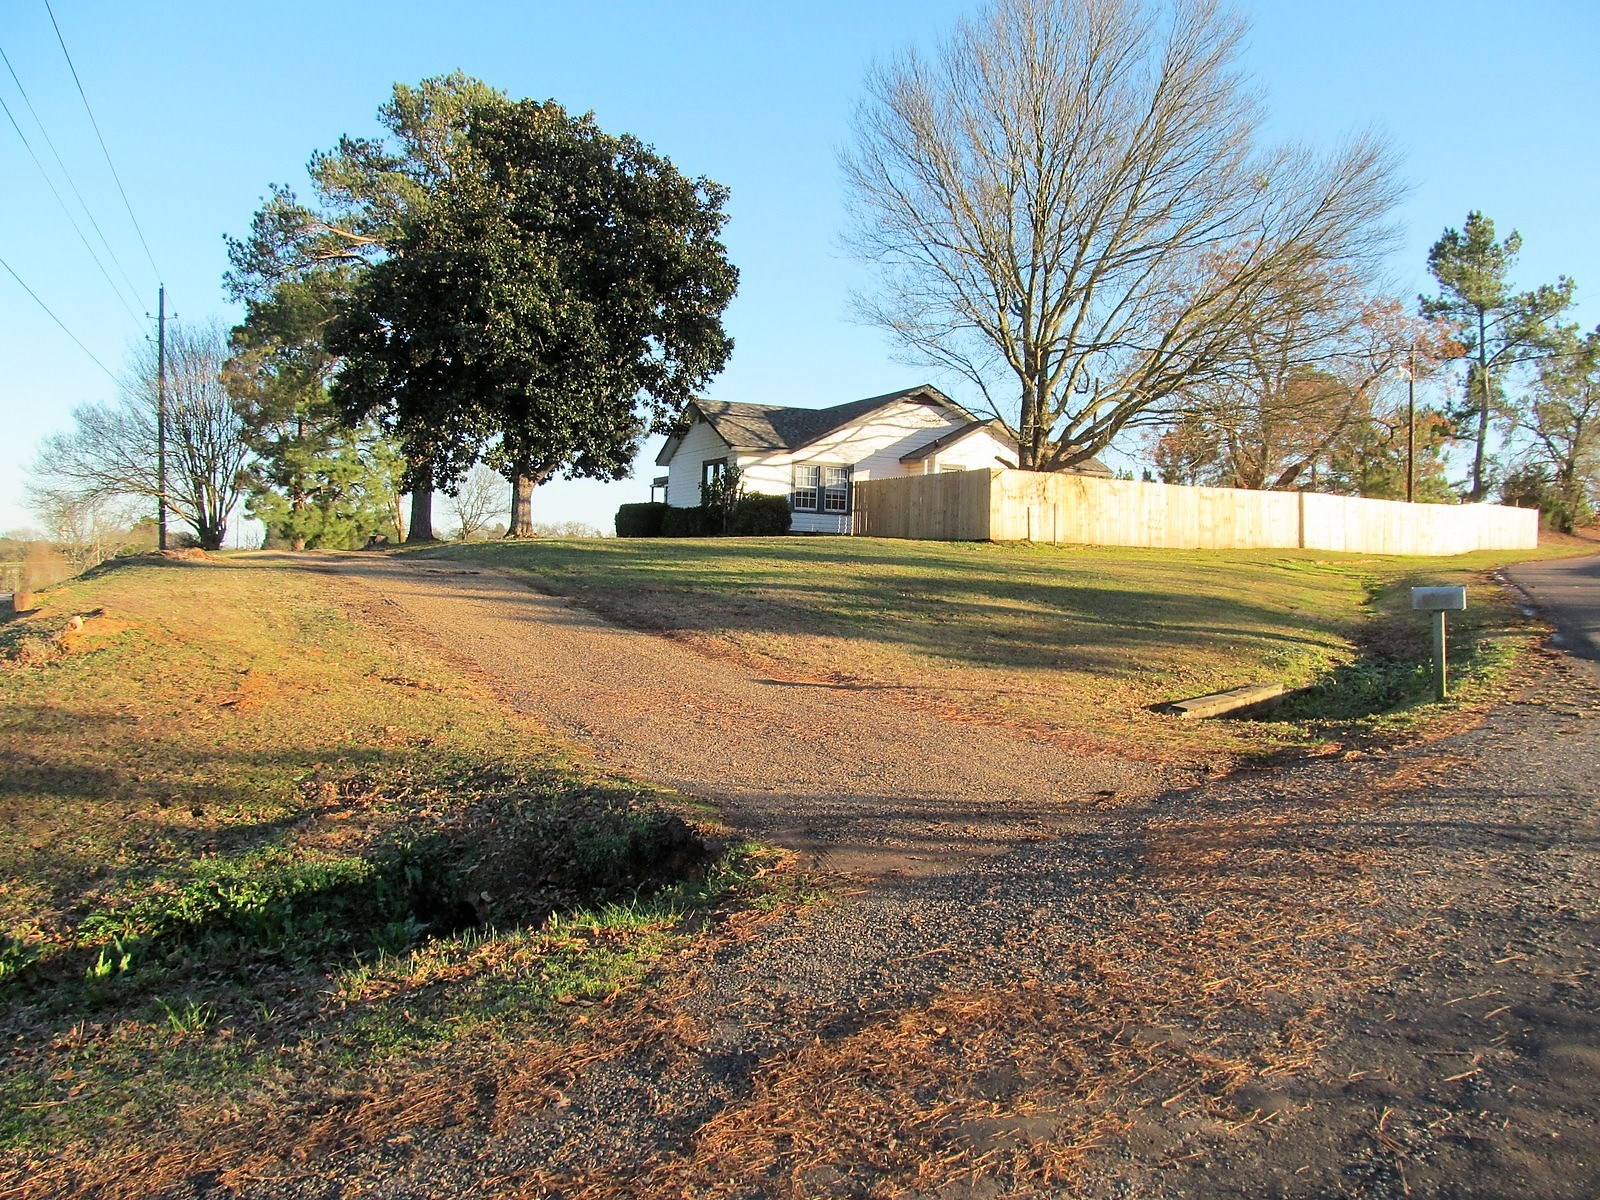 WINNSBORO TEXAS HOPKINS COUNTY COUNTRY HOME ON OVER AN ACRE